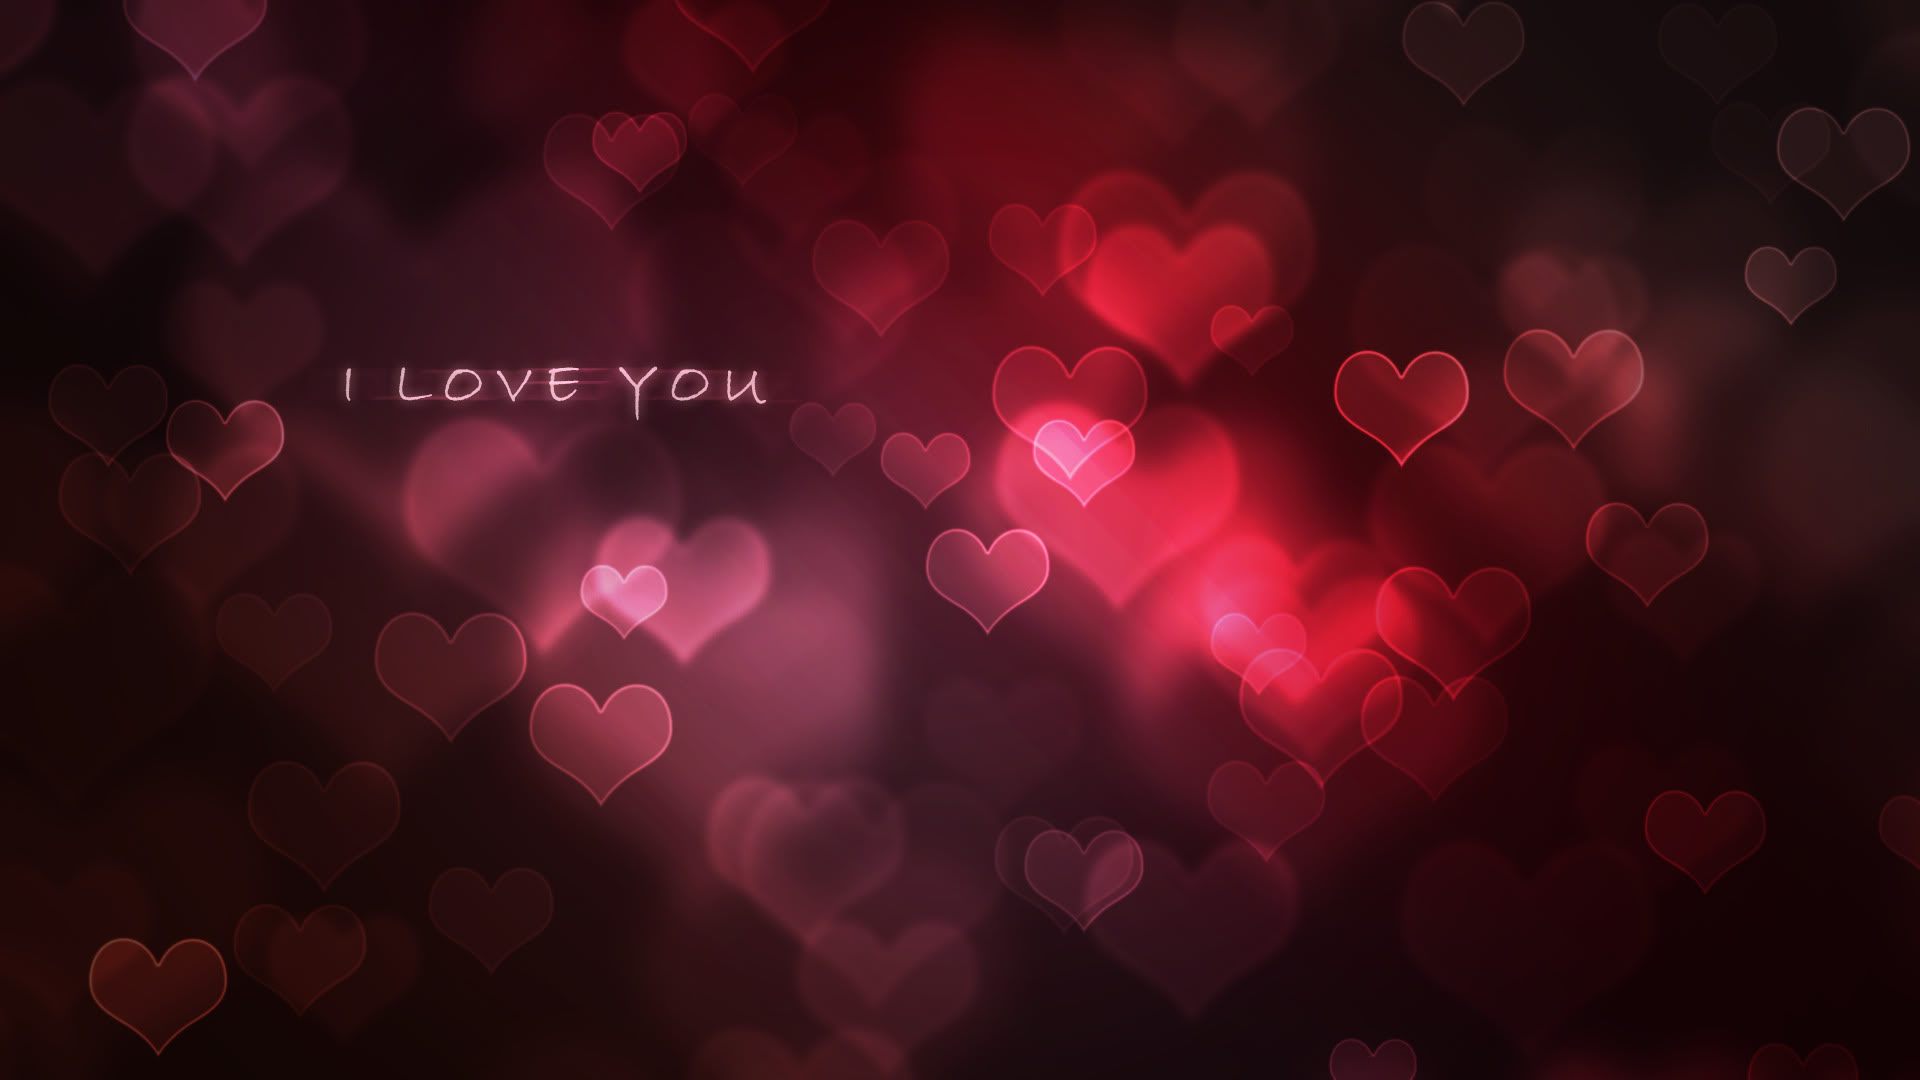 Free Download Love U Wallpapers 9904 Hd Wallpapers In Love